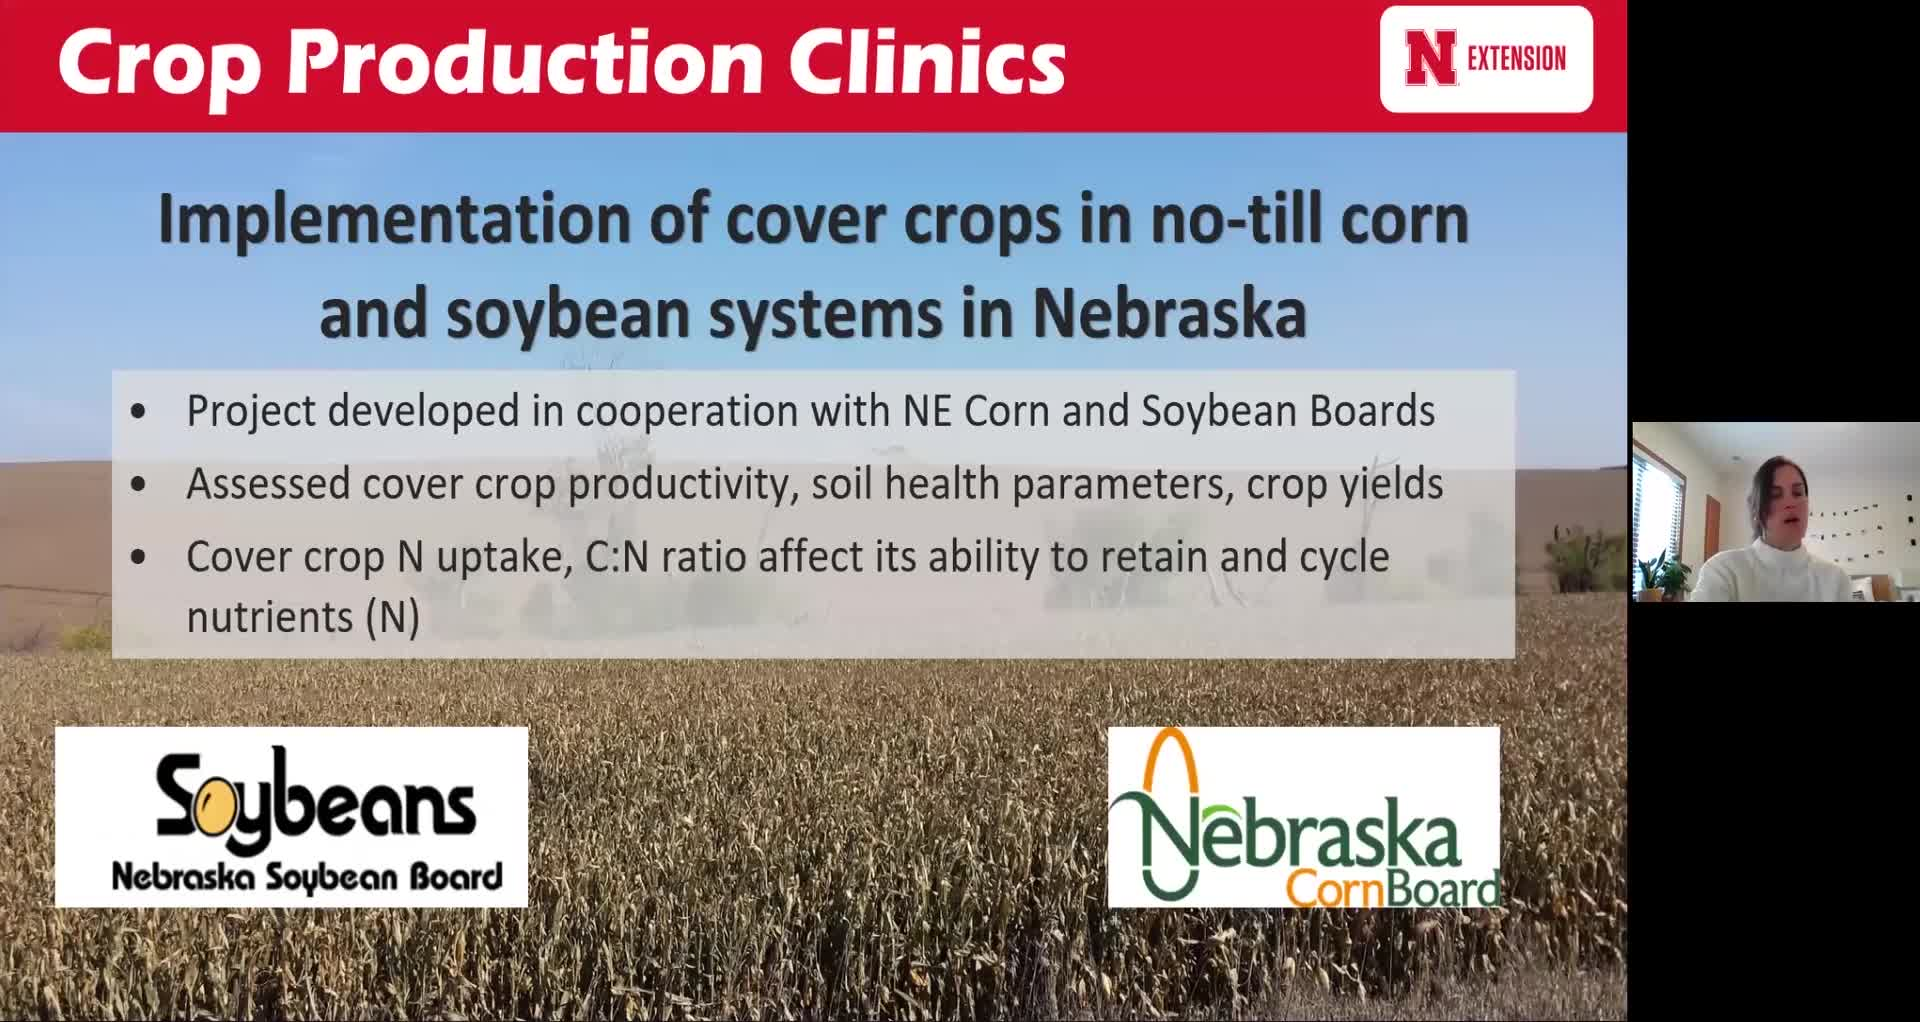 Implementation of cover crops in no-till corn and soybean systems in Nebraska